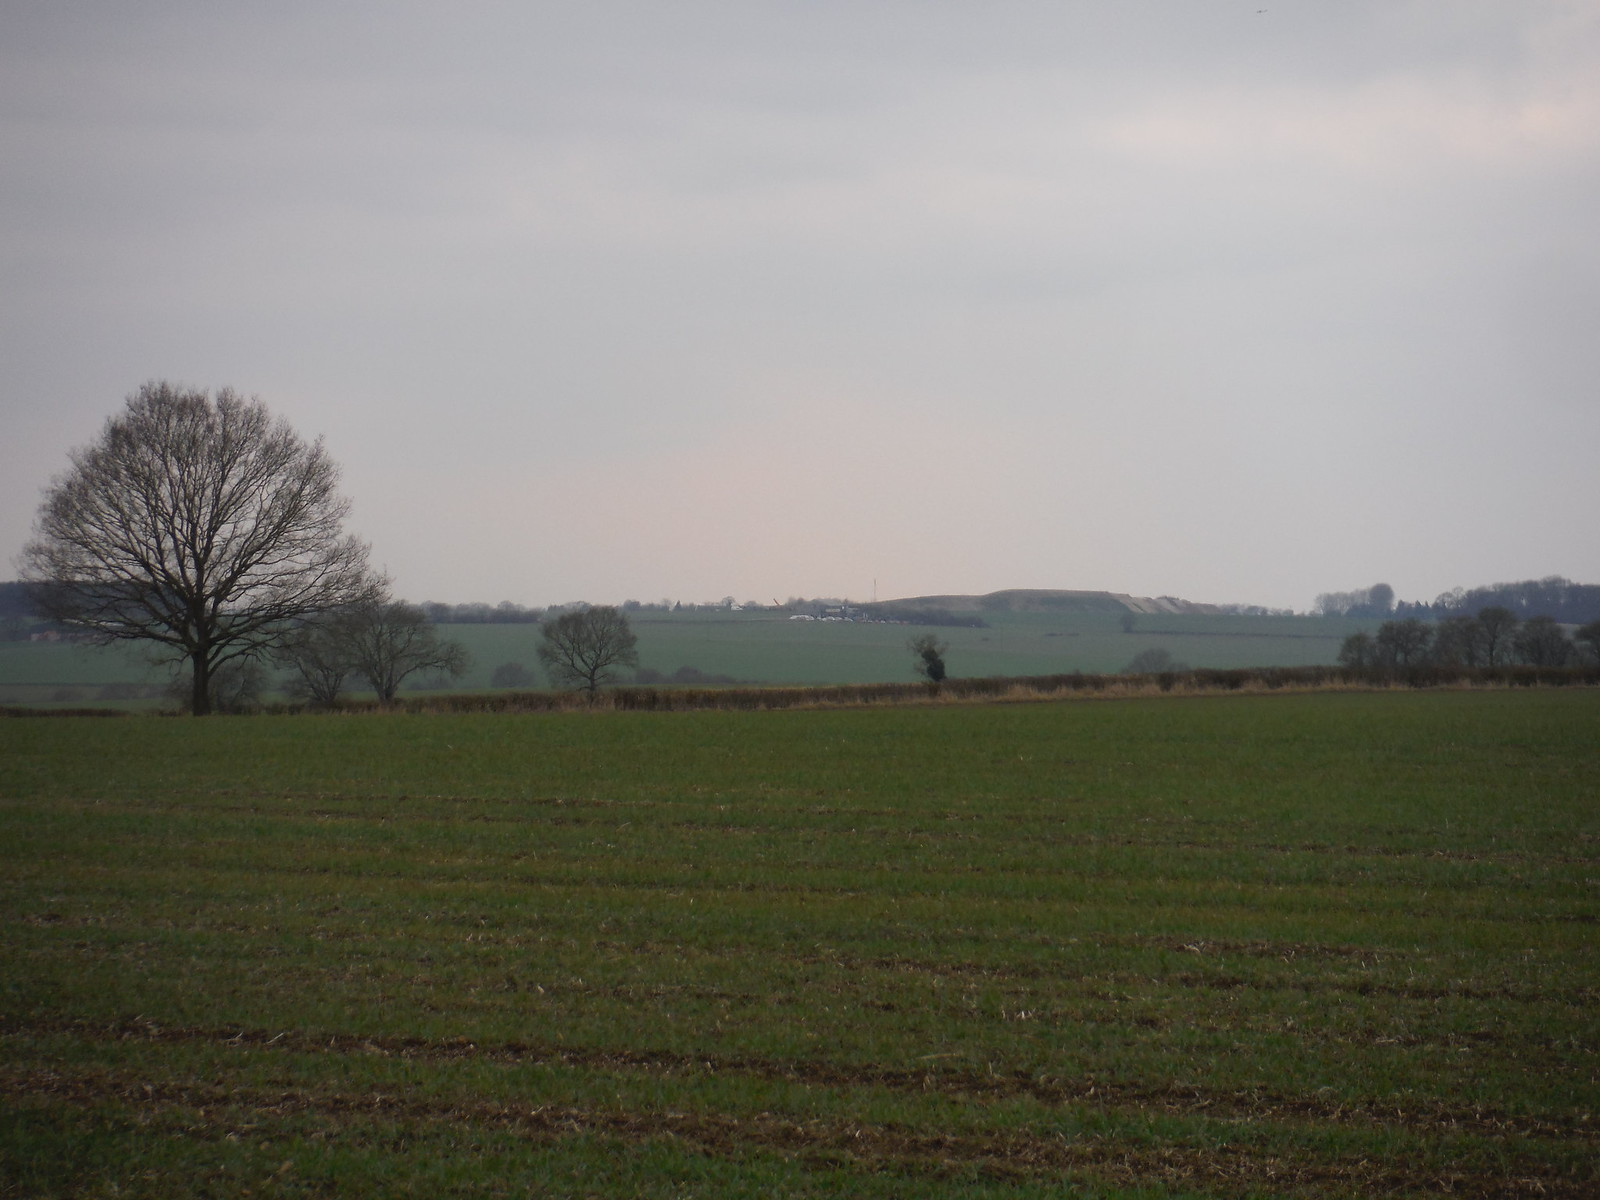 Landing Strip near Nuthampstead, from Langley, Upper Green SWC Walk 116 Wendens Ambo [Audley End station] Circular (Extension)